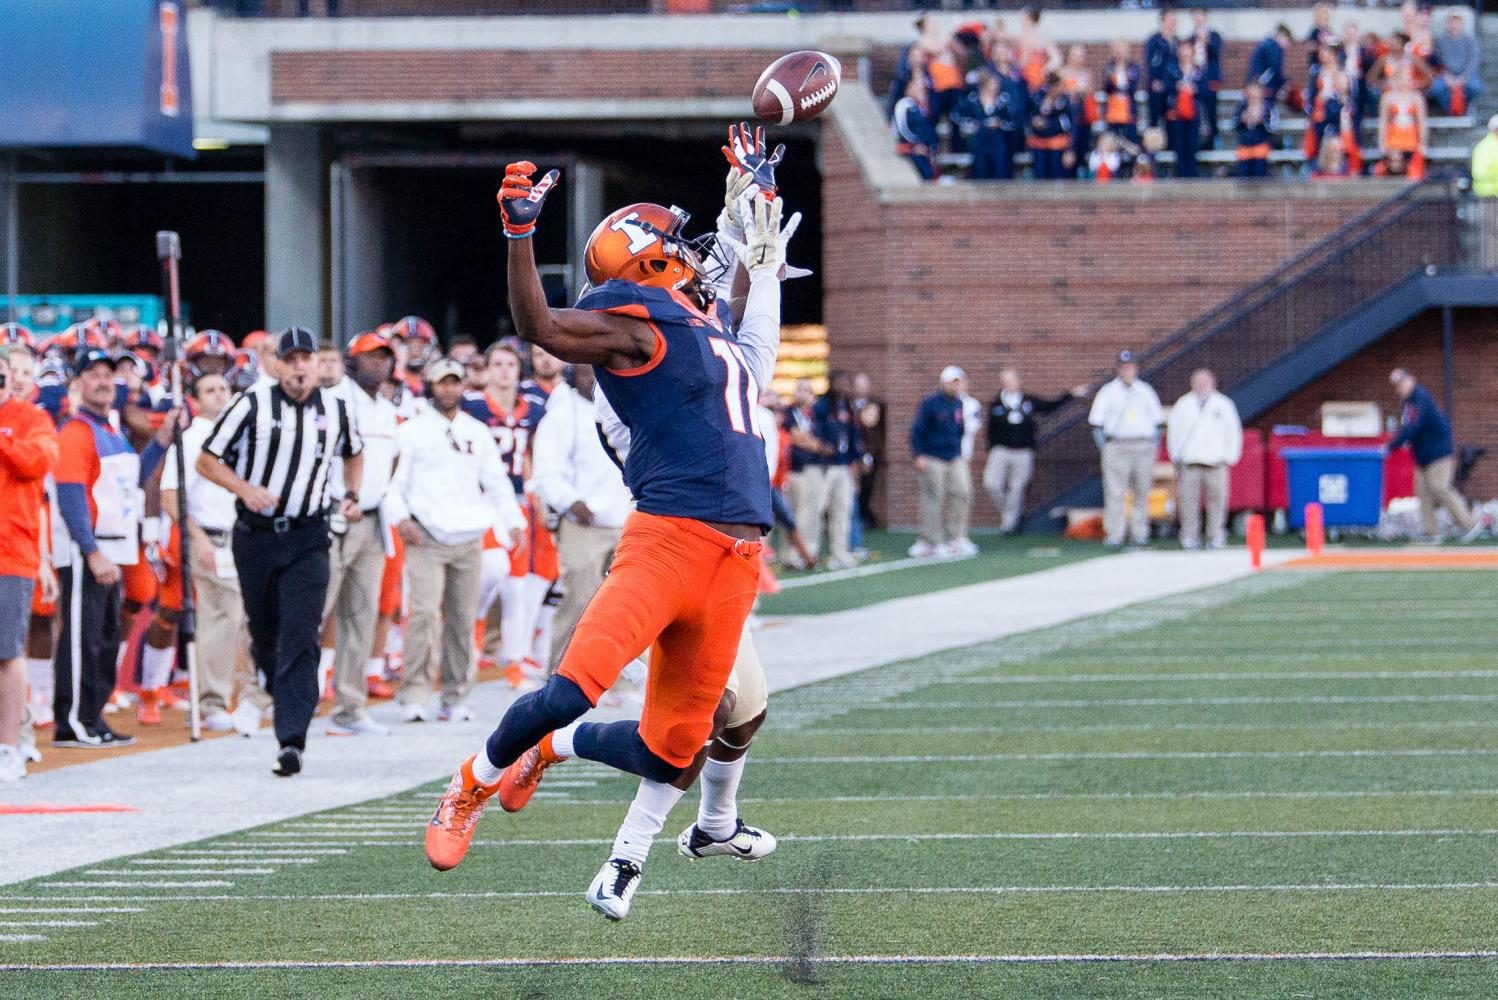 Illinois wide receiver Malik Turner (11) tips a pass that he would later catch during the game against Purdue at Memorial Stadium on October 8. The Illini lost 34-31.